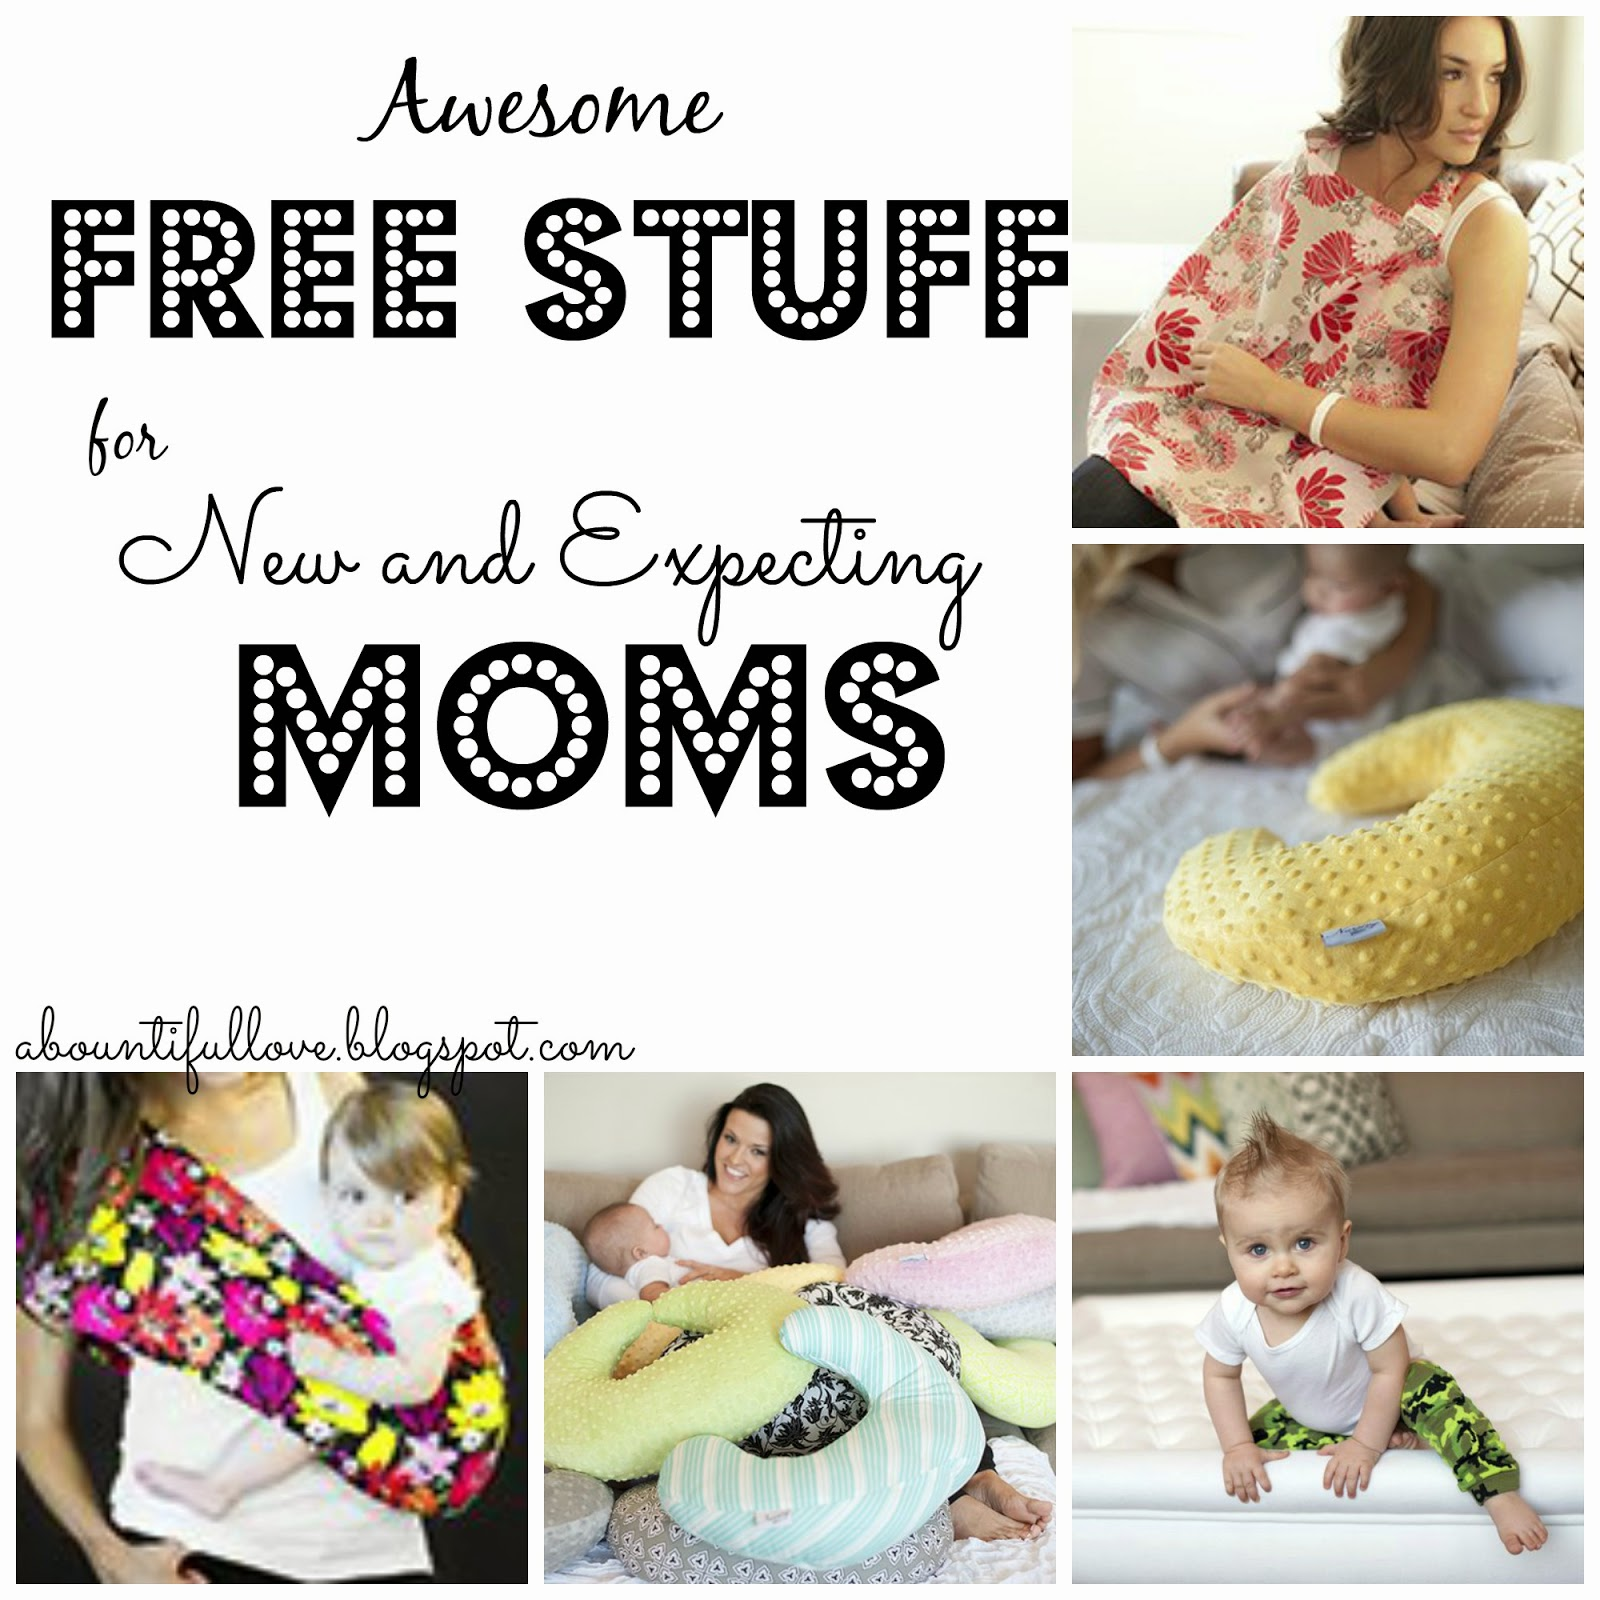 We decided to make things even easier and compiled a list of freebies and discounts for new and expecting moms and dads! Baby Registry Freebies. A baby registry is a way for the friends and family of an expectant mom to help her stockpile the things she'll need once the baby arrives.